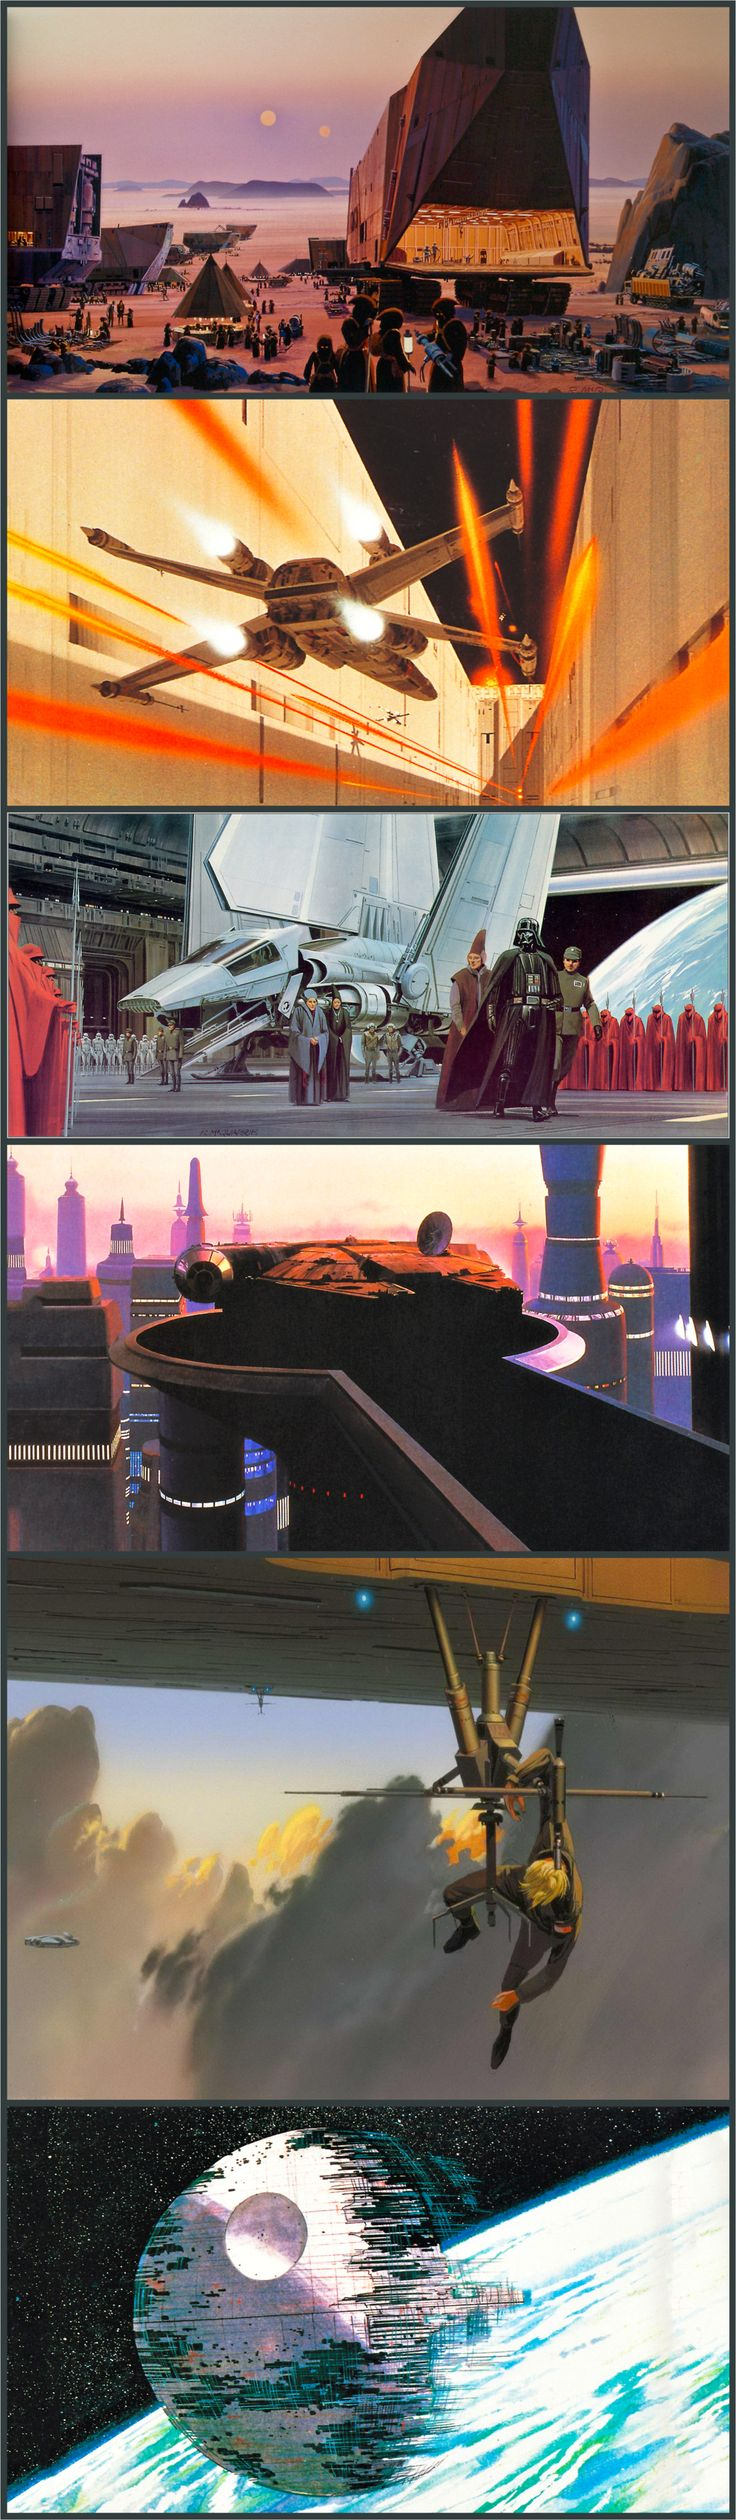 Original concept art for Star Wars by Ralph McQuarrie.